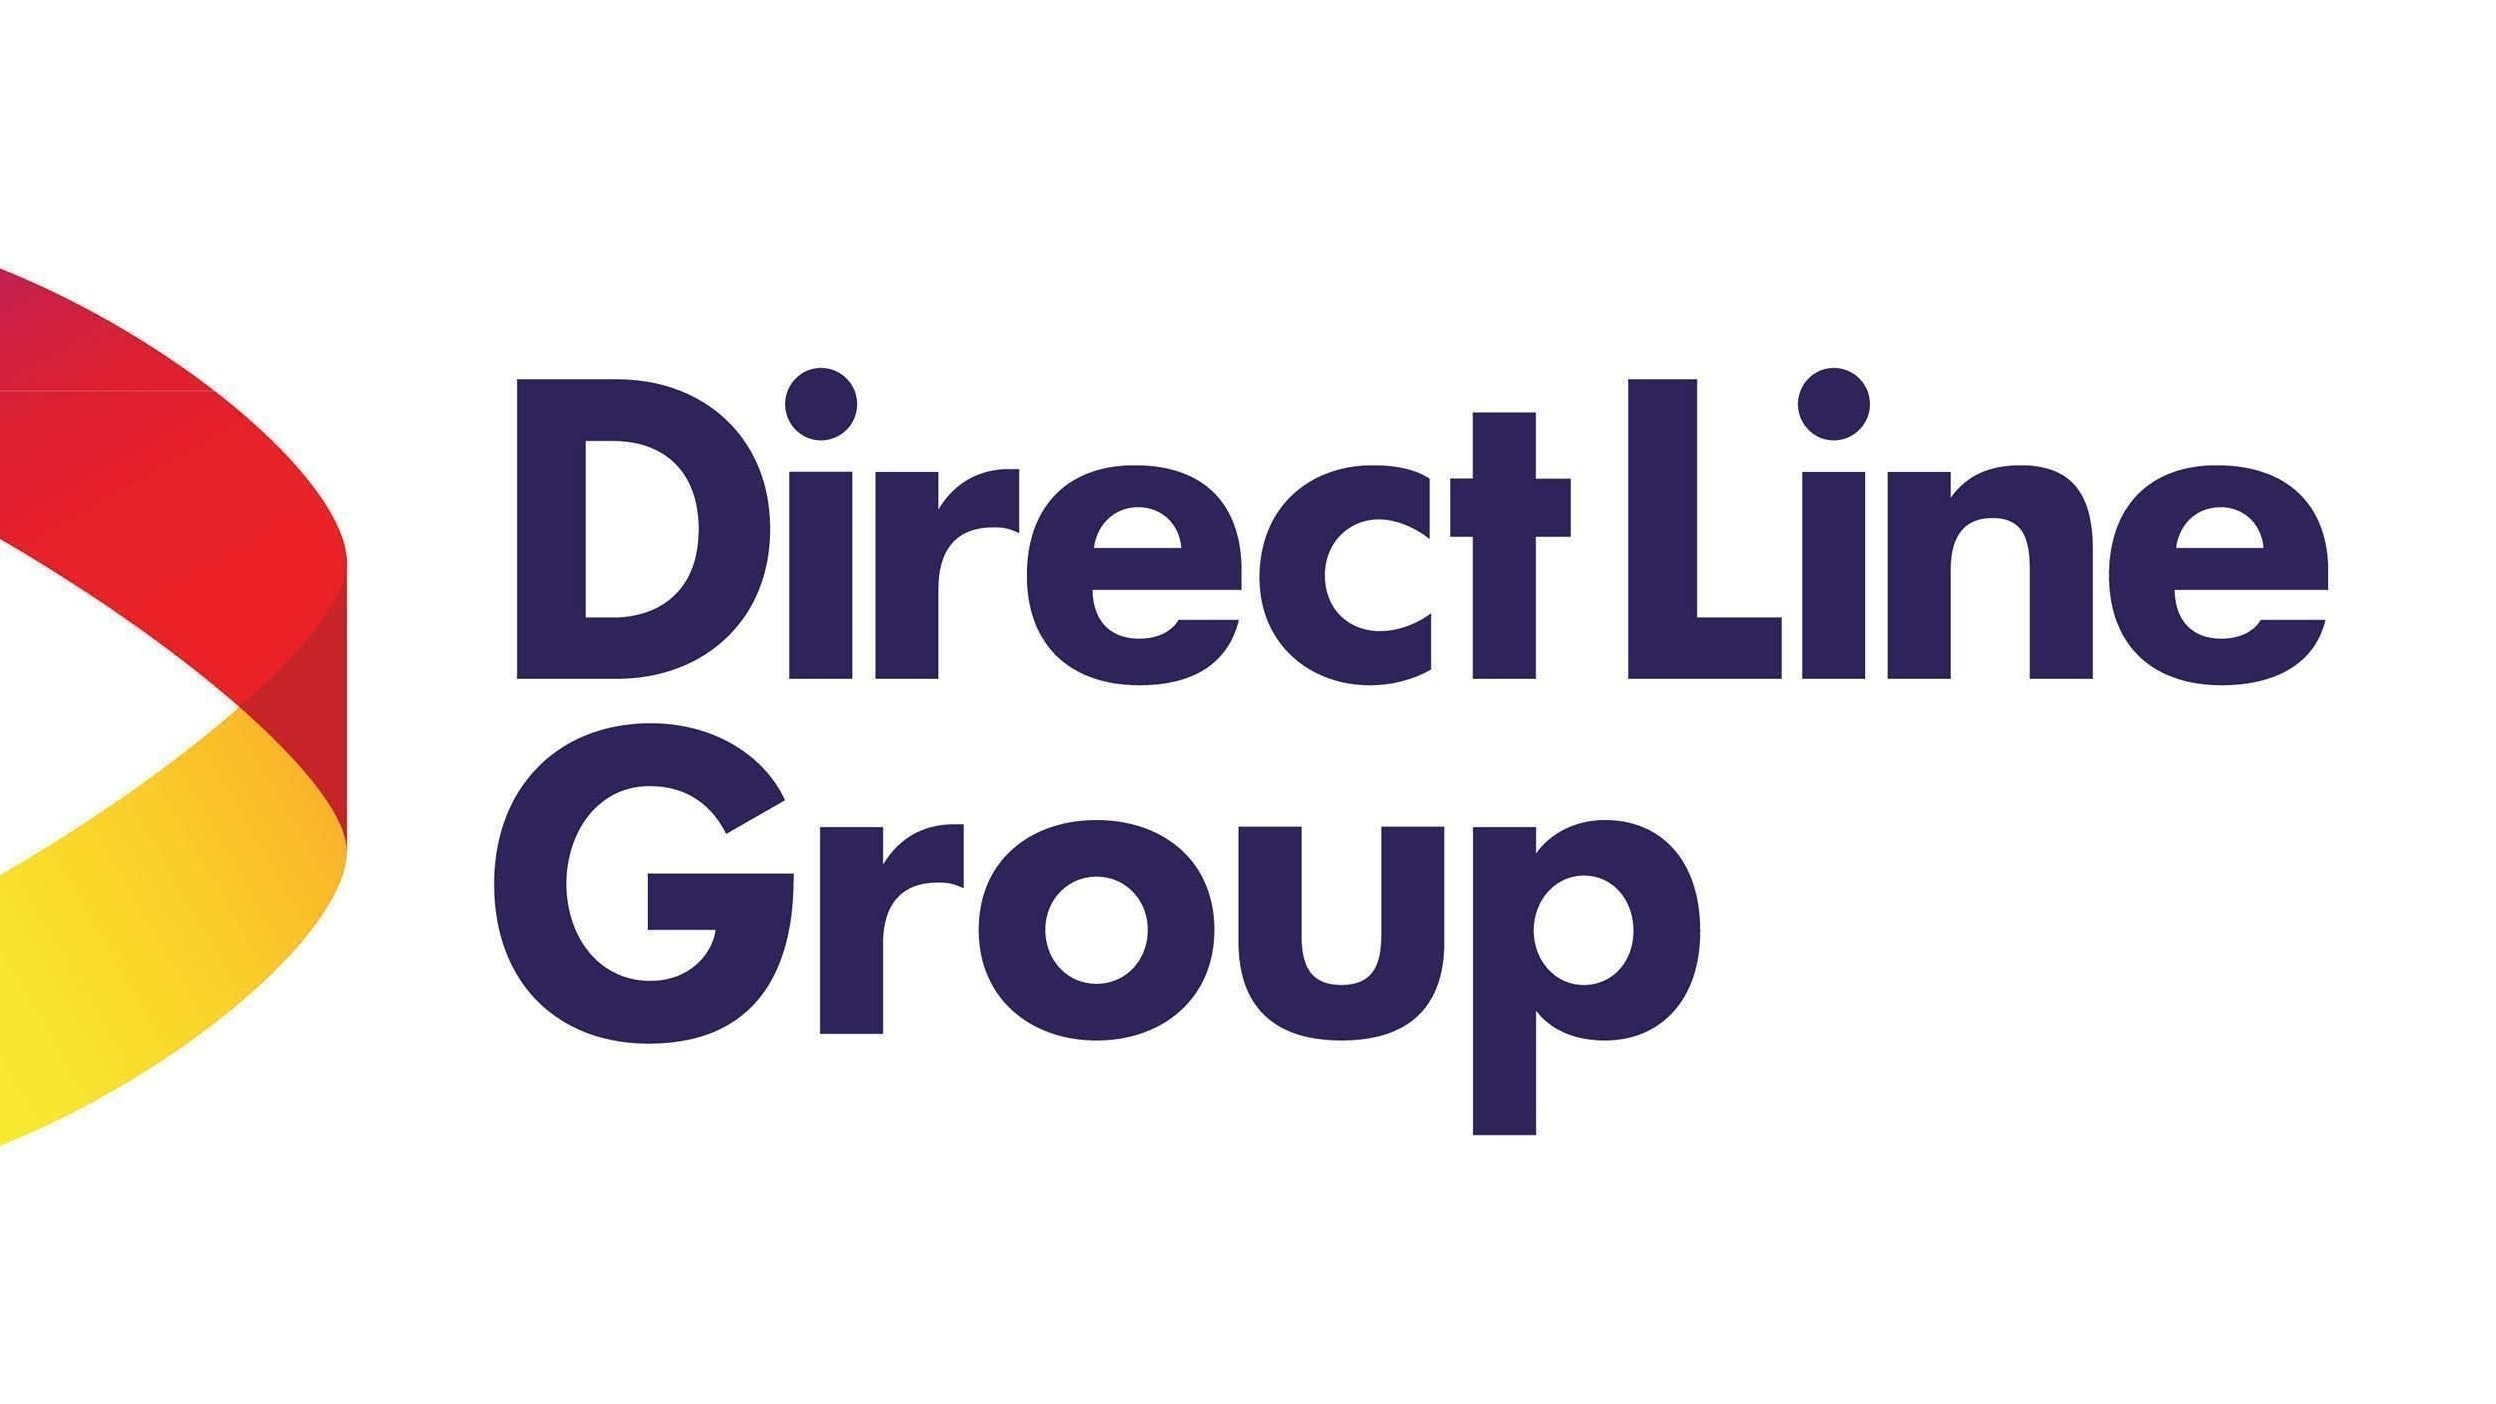 Shares windfall for Direct Line staff after bumper profits | BT